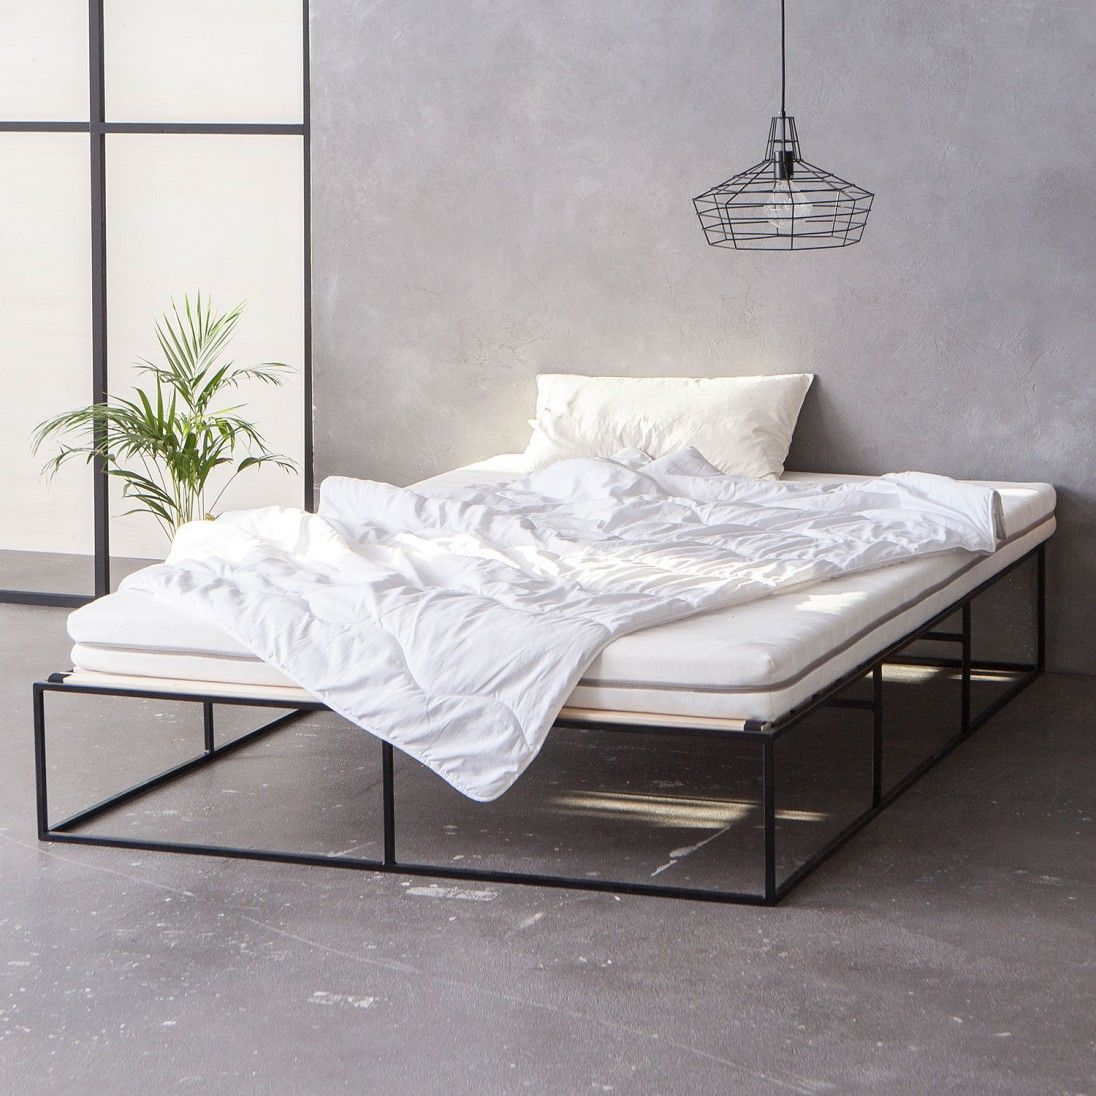 Monoqi Ion Stahlbett Schwarz Steel Bed Design Furniture Minimalist Bed